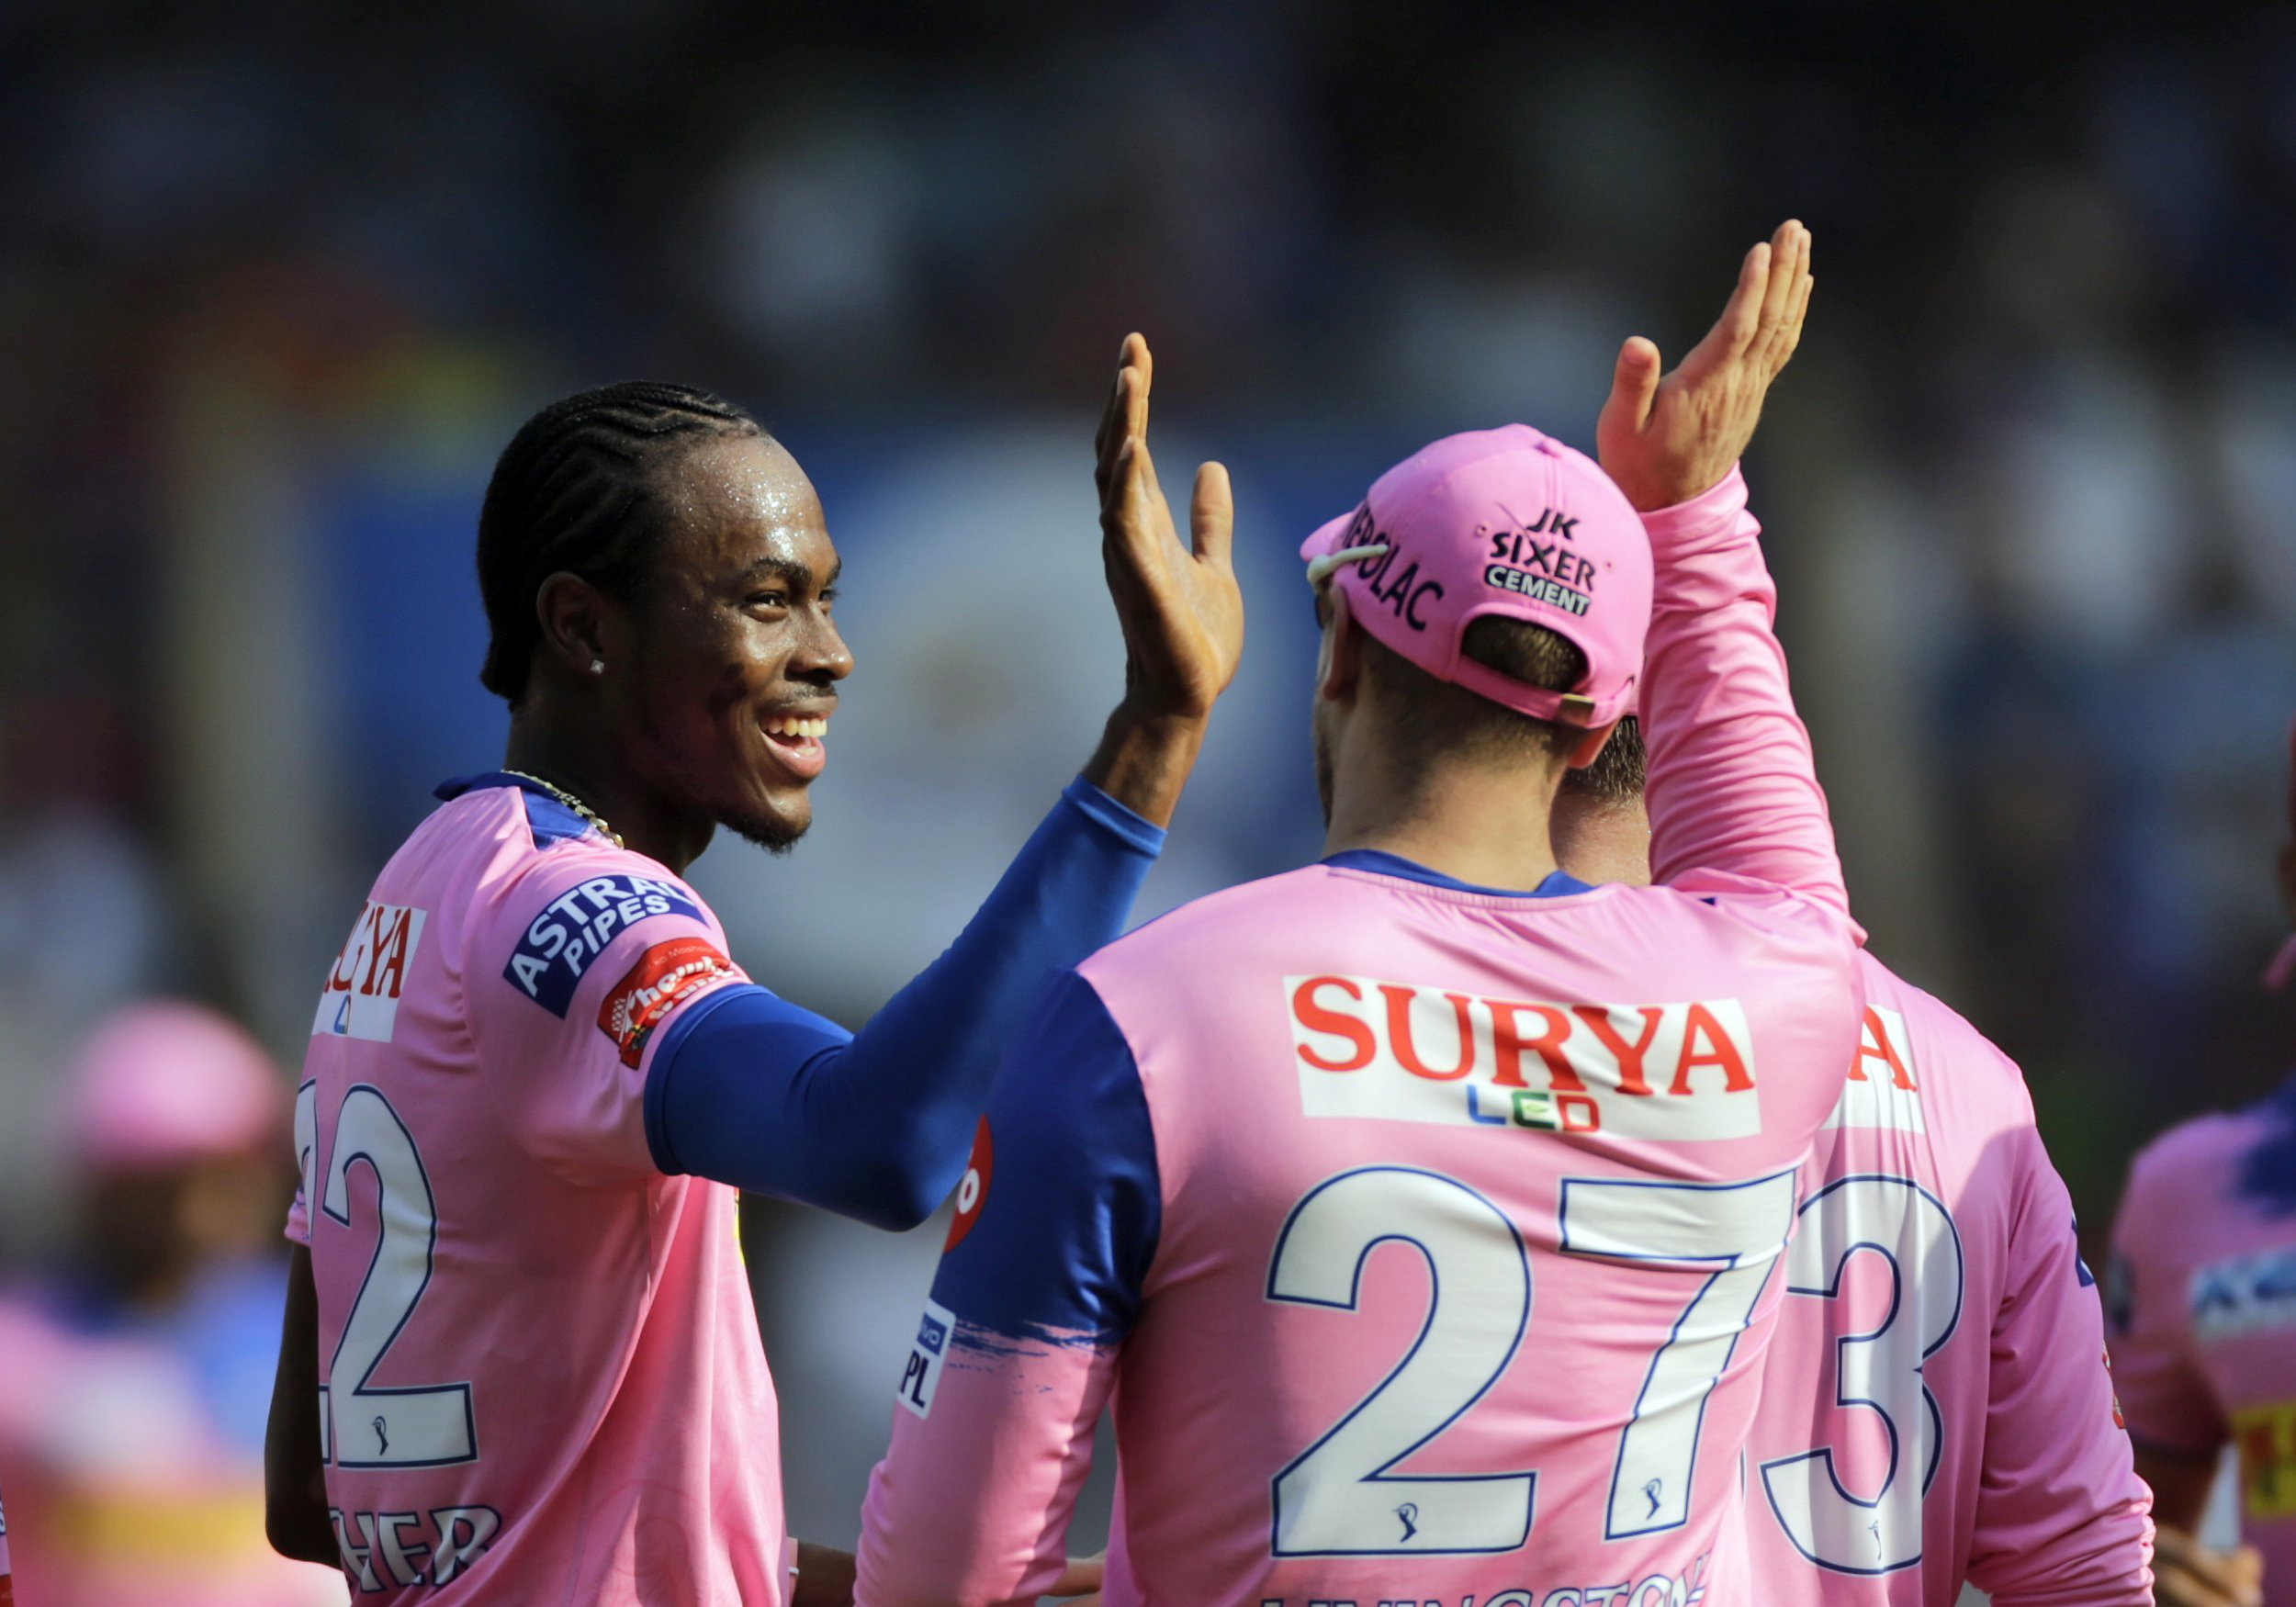 England all-rounder Ben Stokes hails IPL team-mate Jofra Archer as the 'most gifted' bowler he has seen